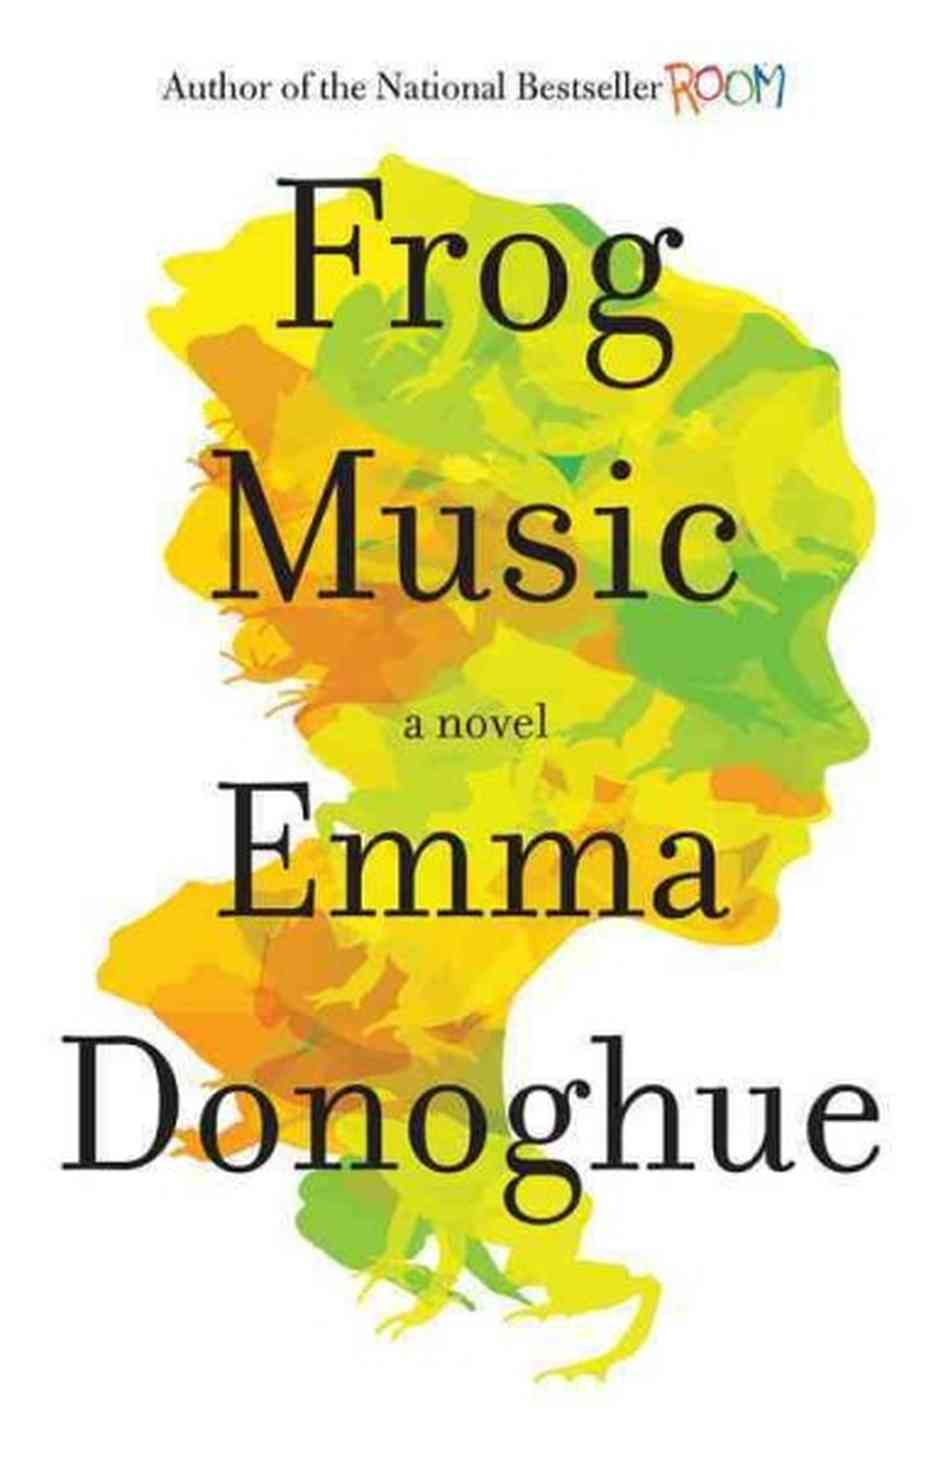 Frog Music by Emma Donoghue  Amazon  |  Goodreads